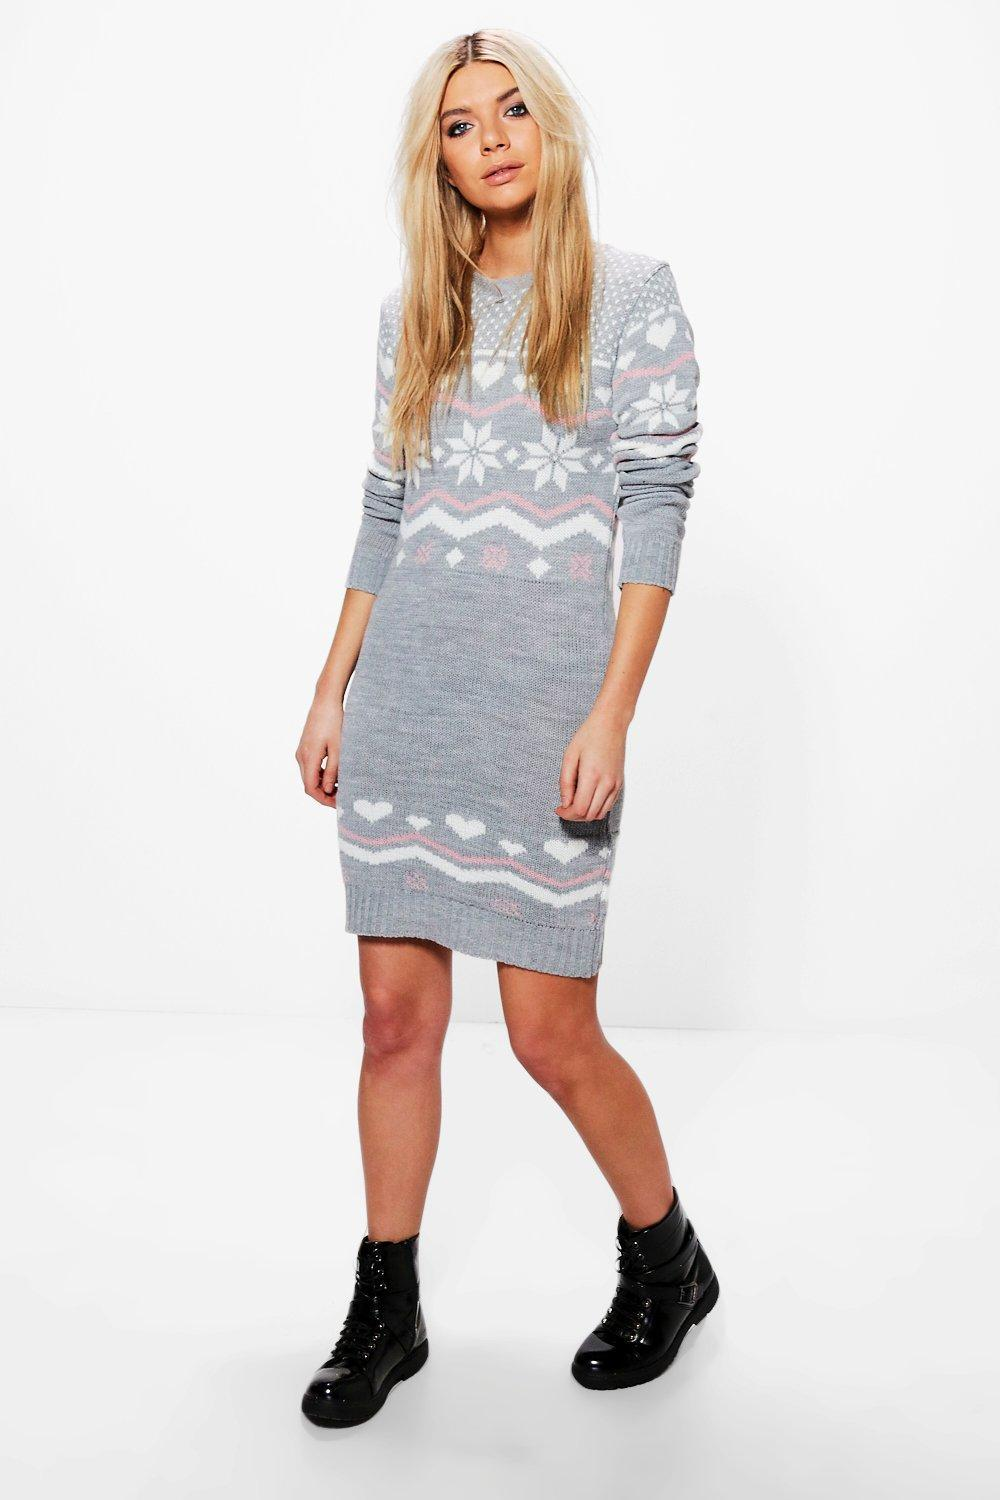 WOMEN LADIES SEQUIN TIGER FACE PRINT OVERSIZED XMAS PARTY TOP JUMPER DRESS NEW